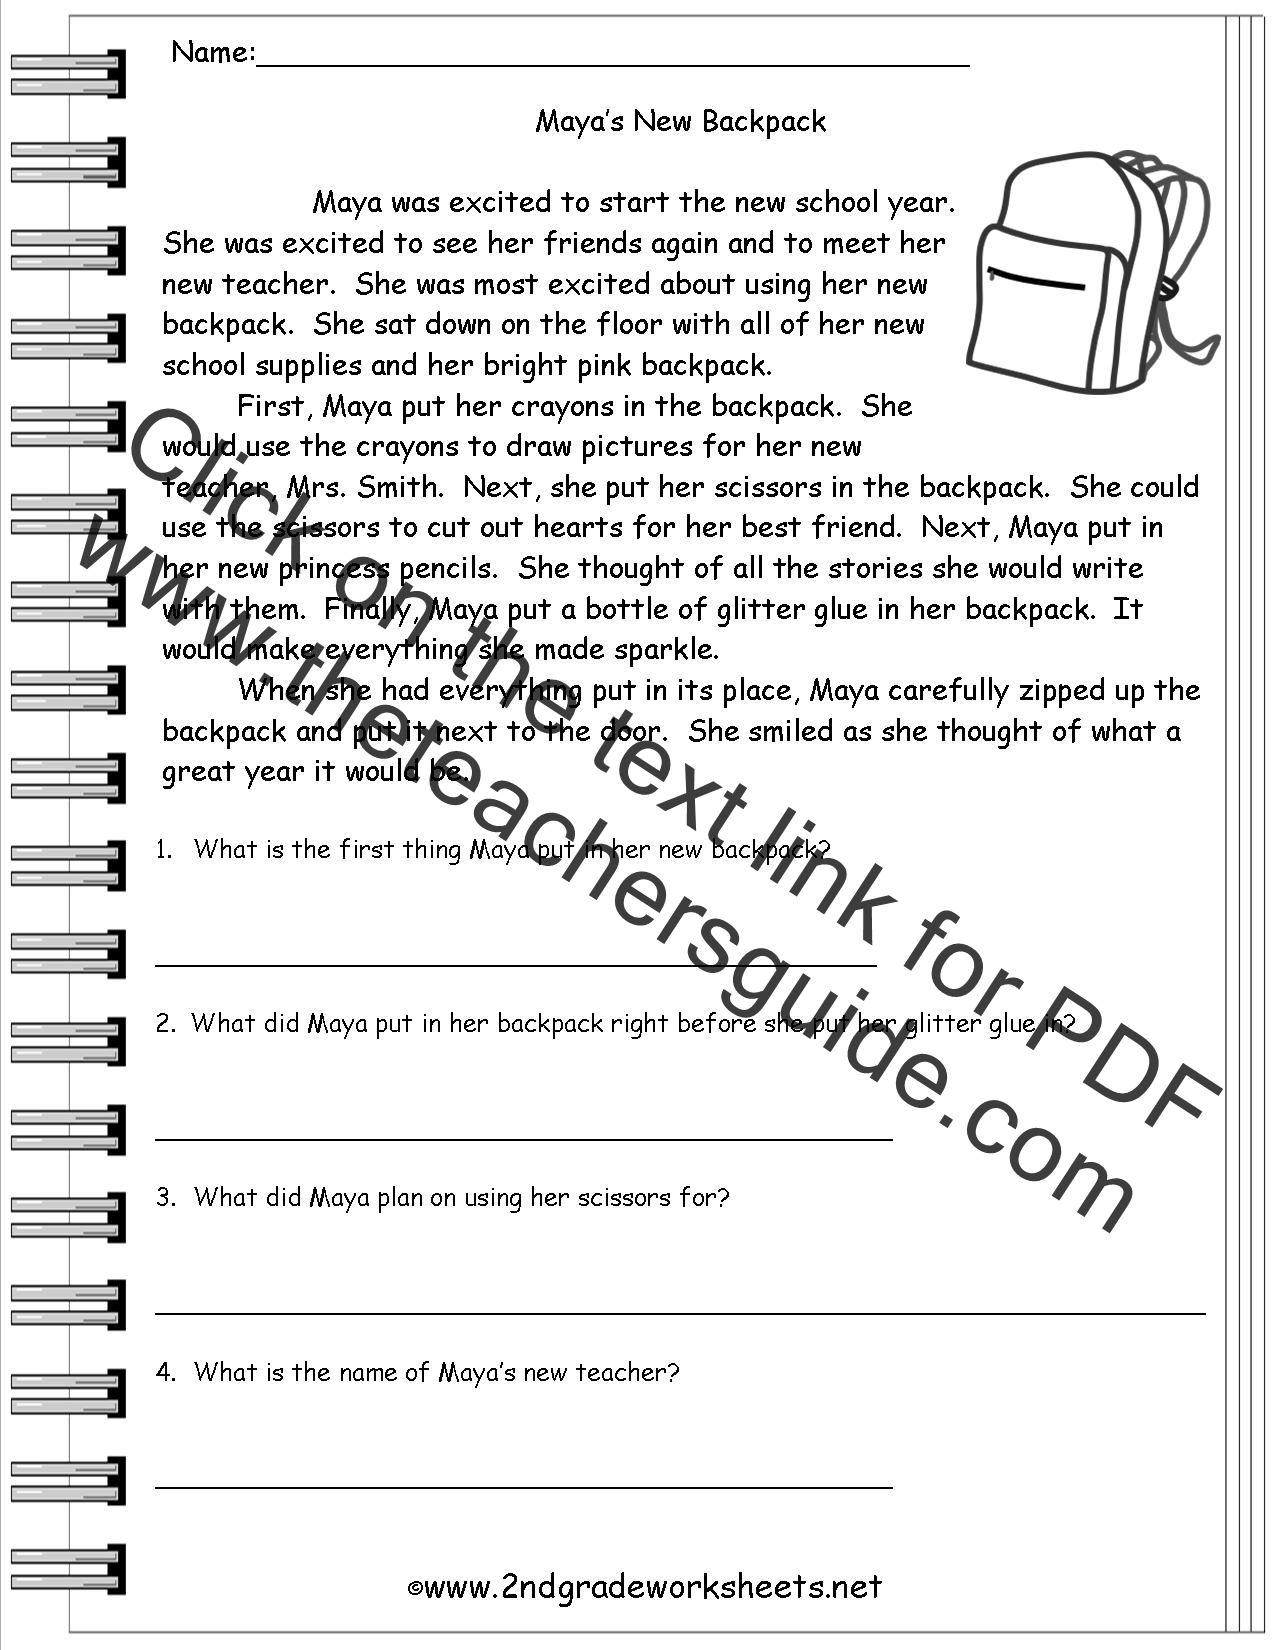 Worksheets Free Reading Comprehension Worksheets 2nd Grade 2ndgradeworksheets reading literature worksheets